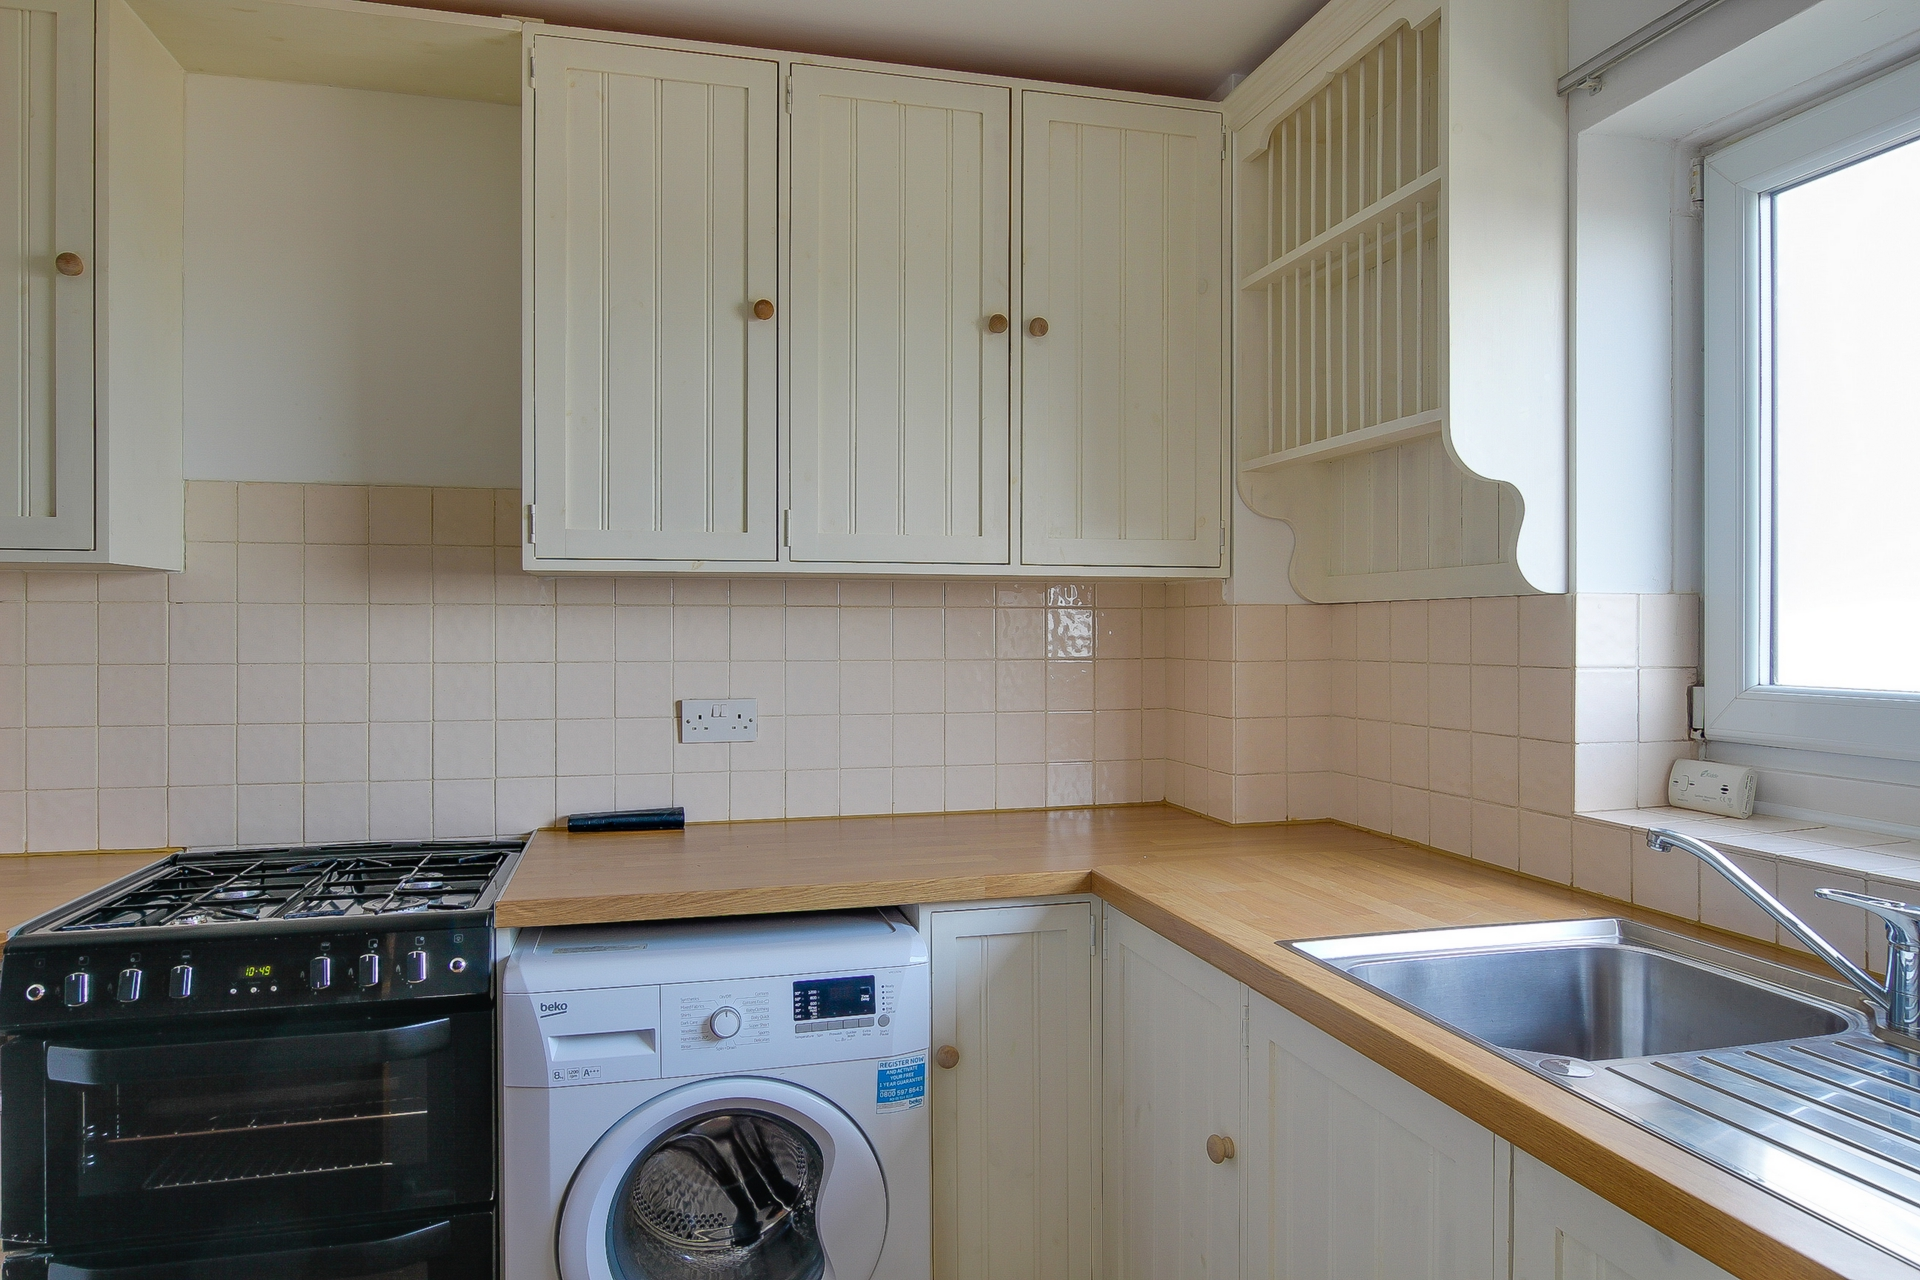 2 bed flat to rent in St Mildreds Gardens, Westgate, CT8 5